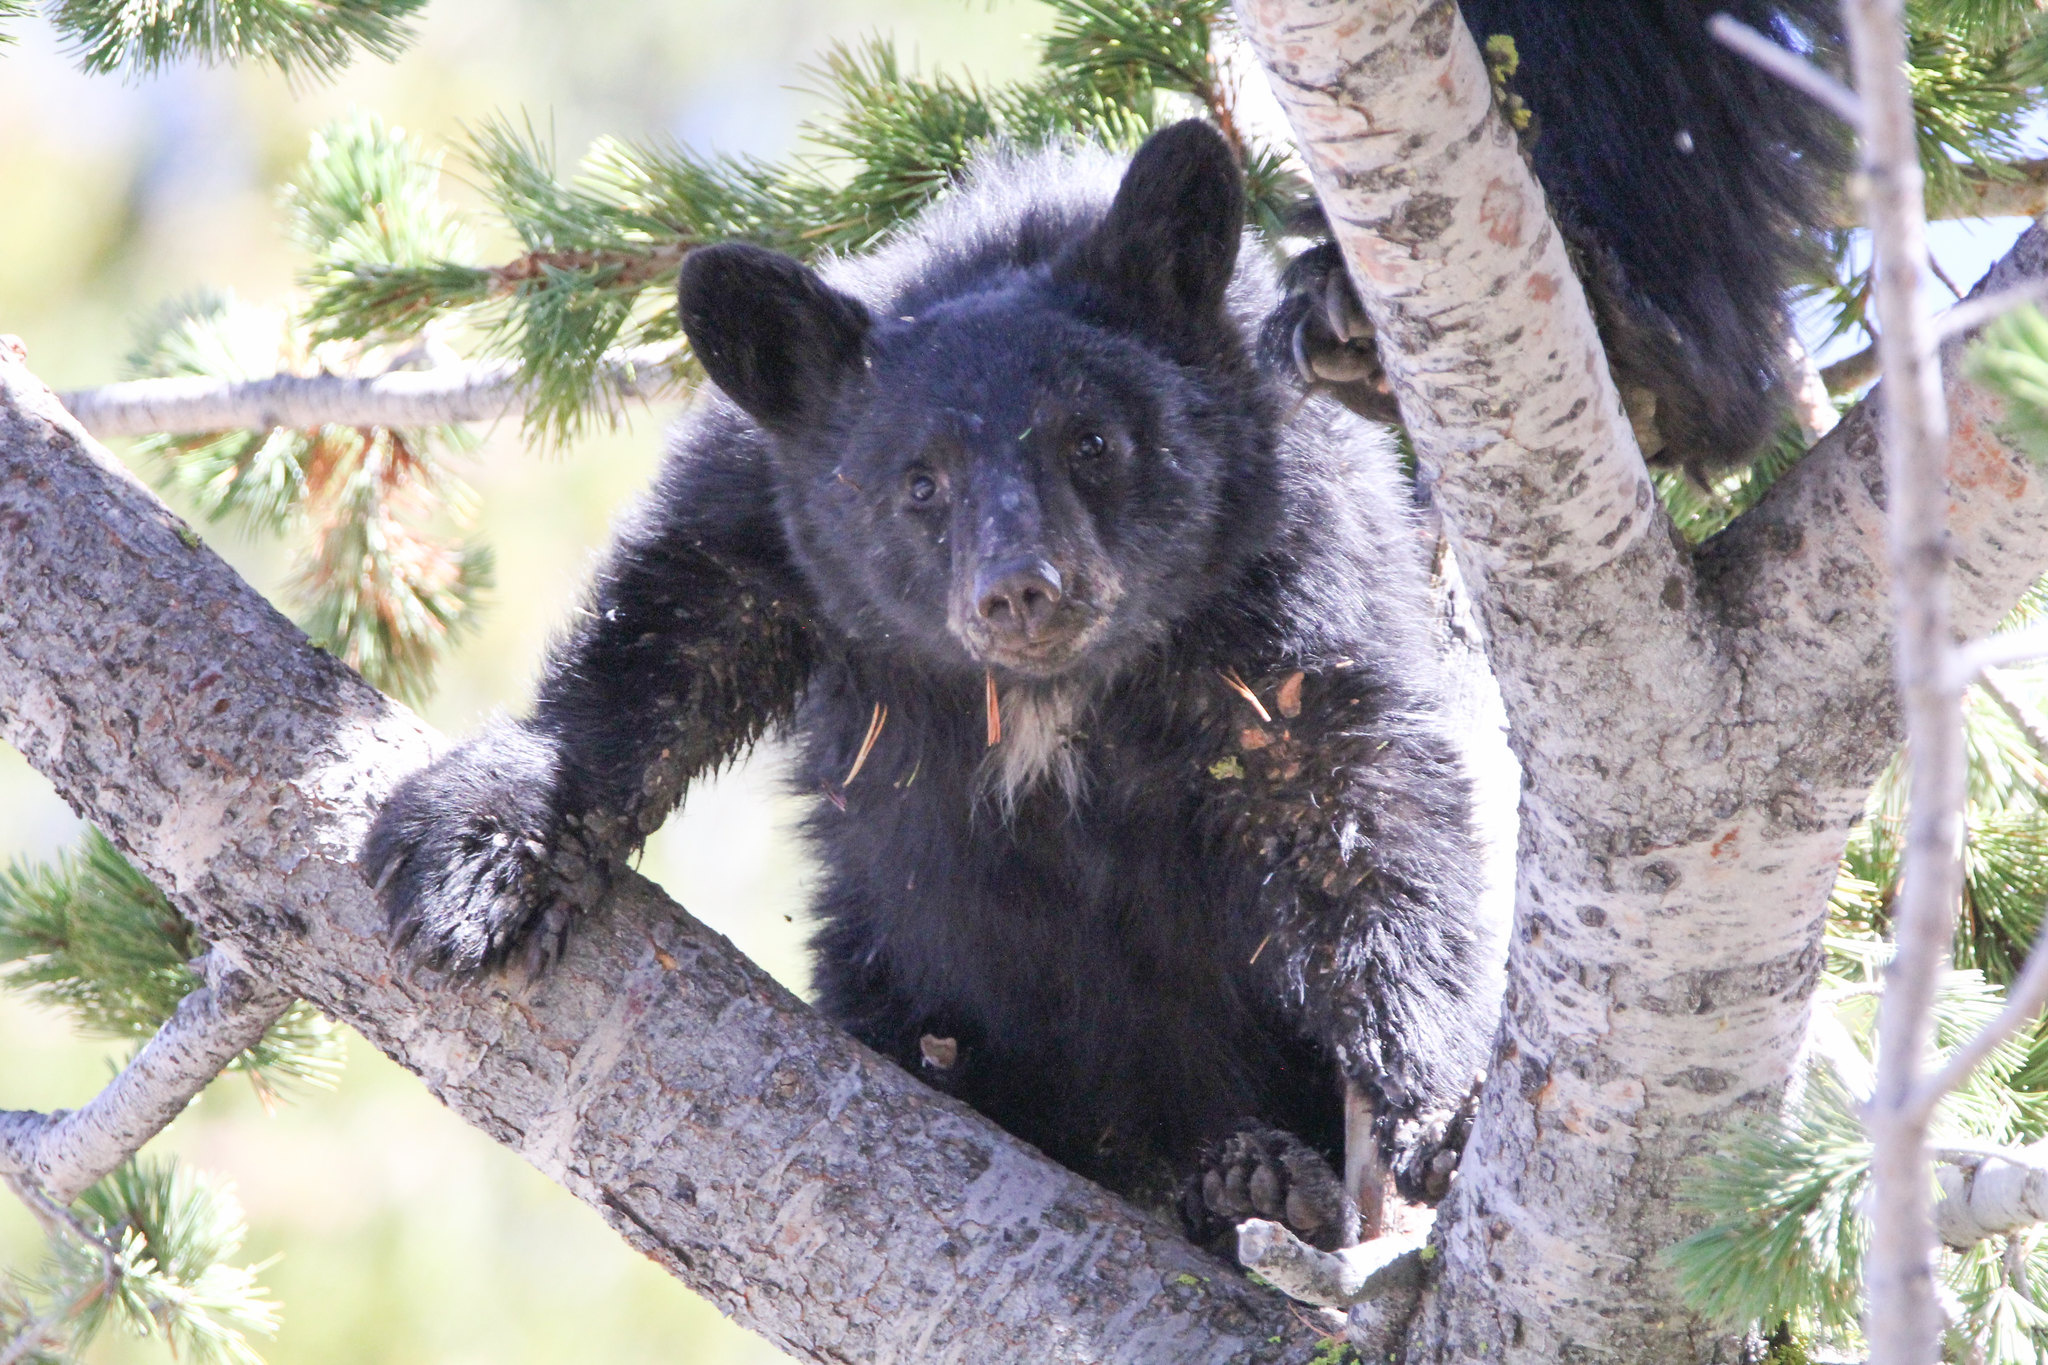 Three Bear Incidents Serve as Reminder to Demonstrate Proper Food Storage